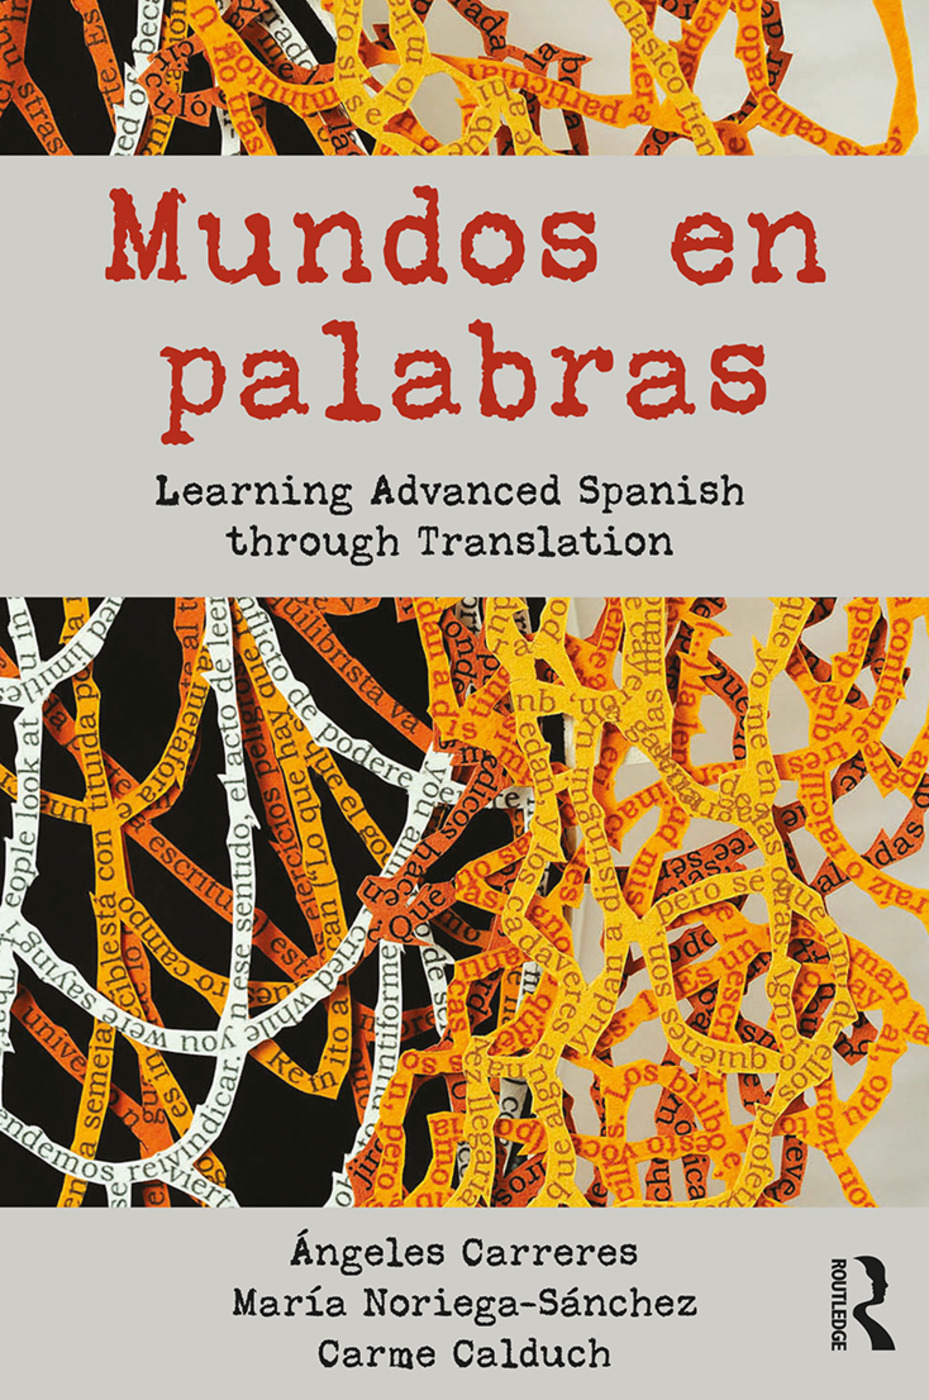 Mundos en palabras: Learning Advanced Spanish through Translation (Paperback) book cover